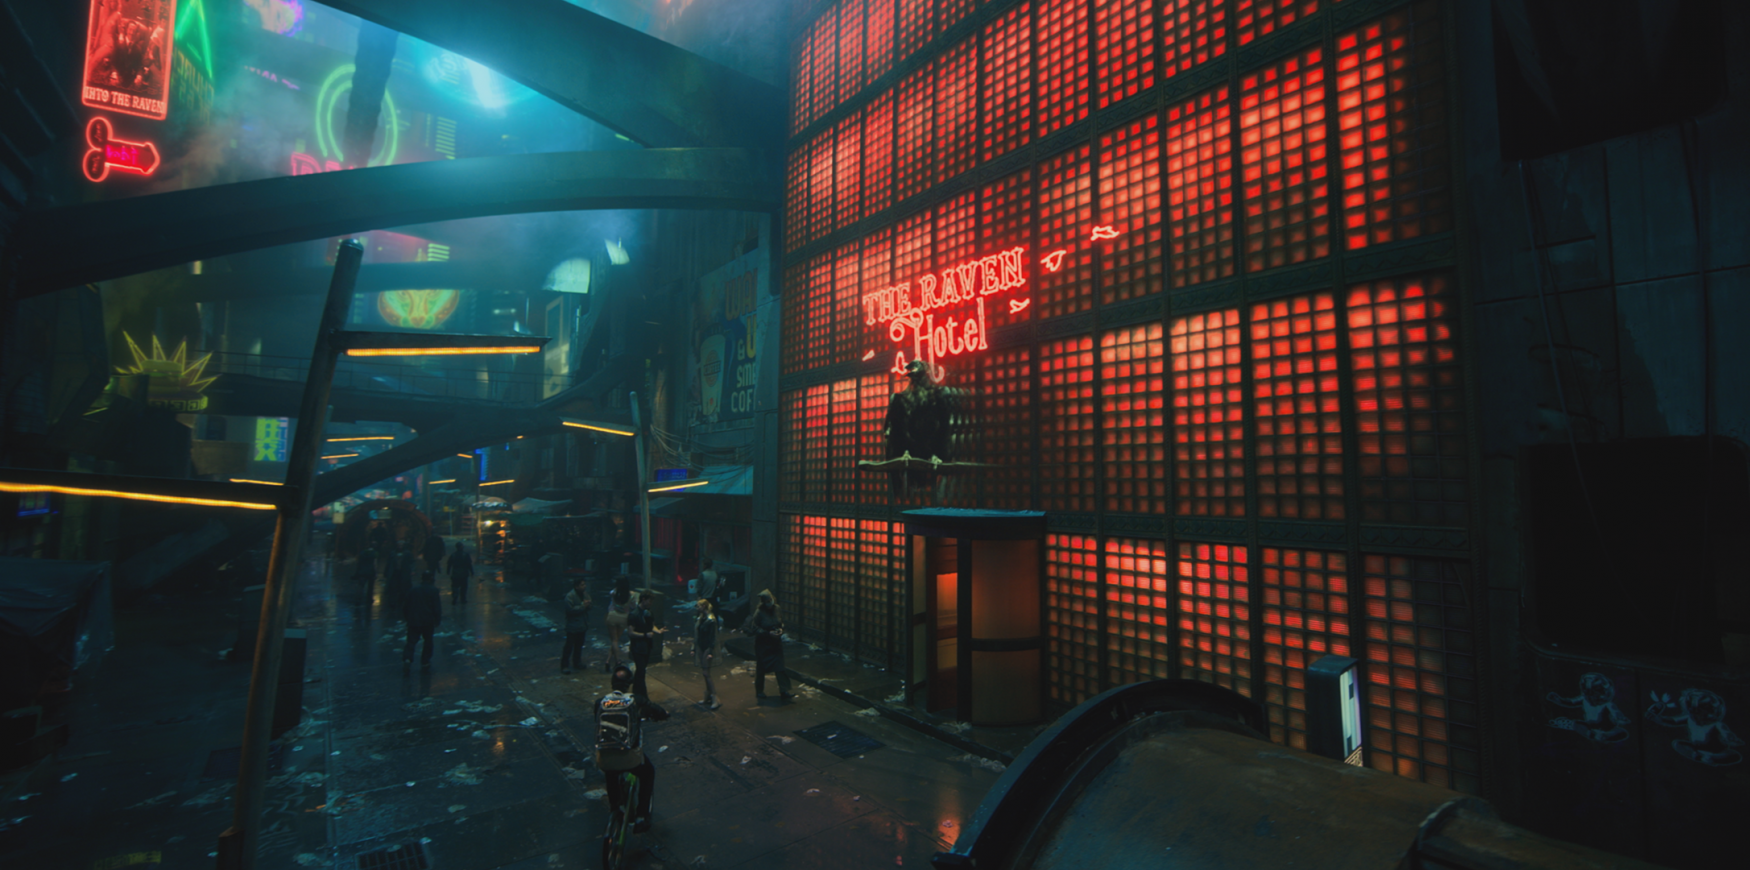 """VFX rendering: Outside view of Altered Carbon's """"The Raven Hotel""""."""